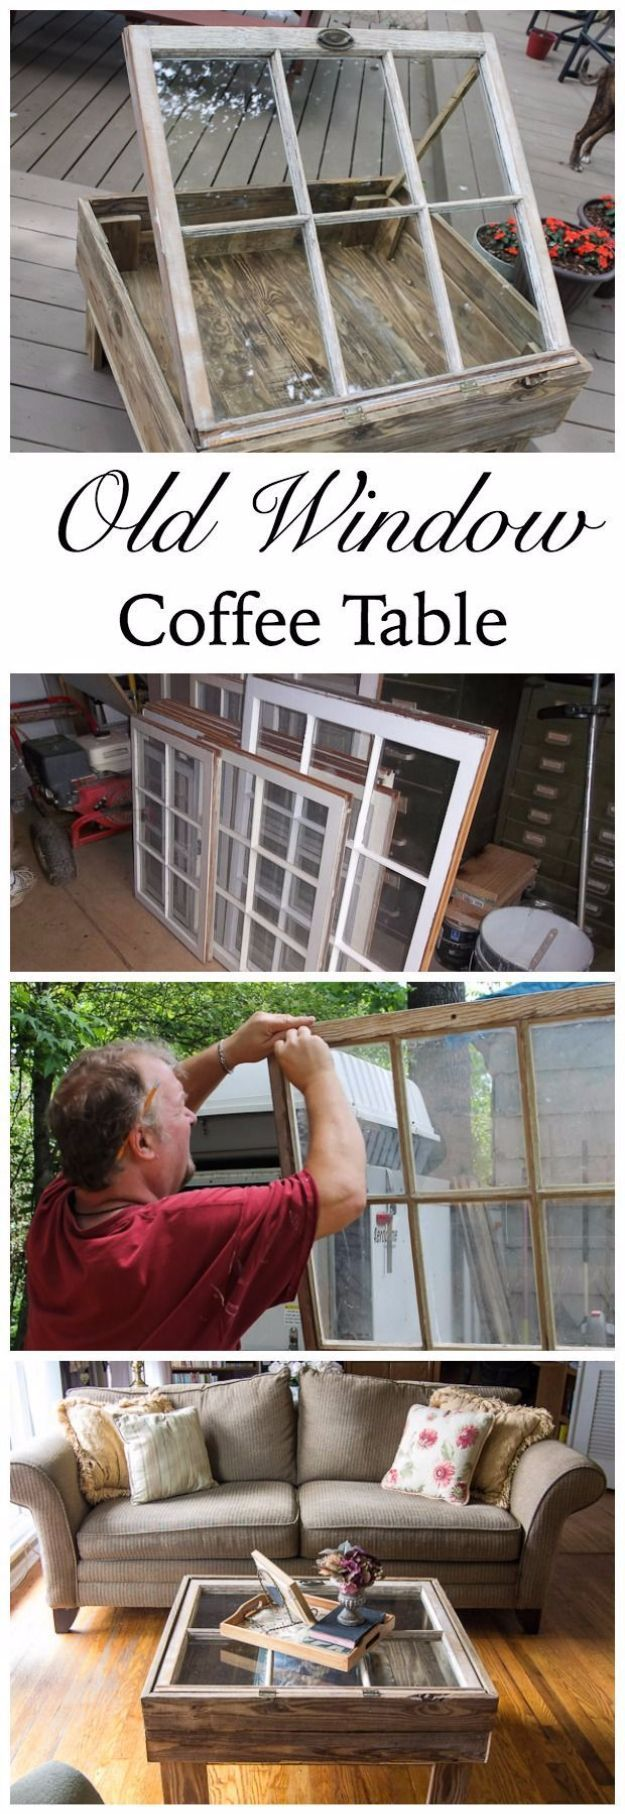 16 DIY Coffee Table Projects 75 best